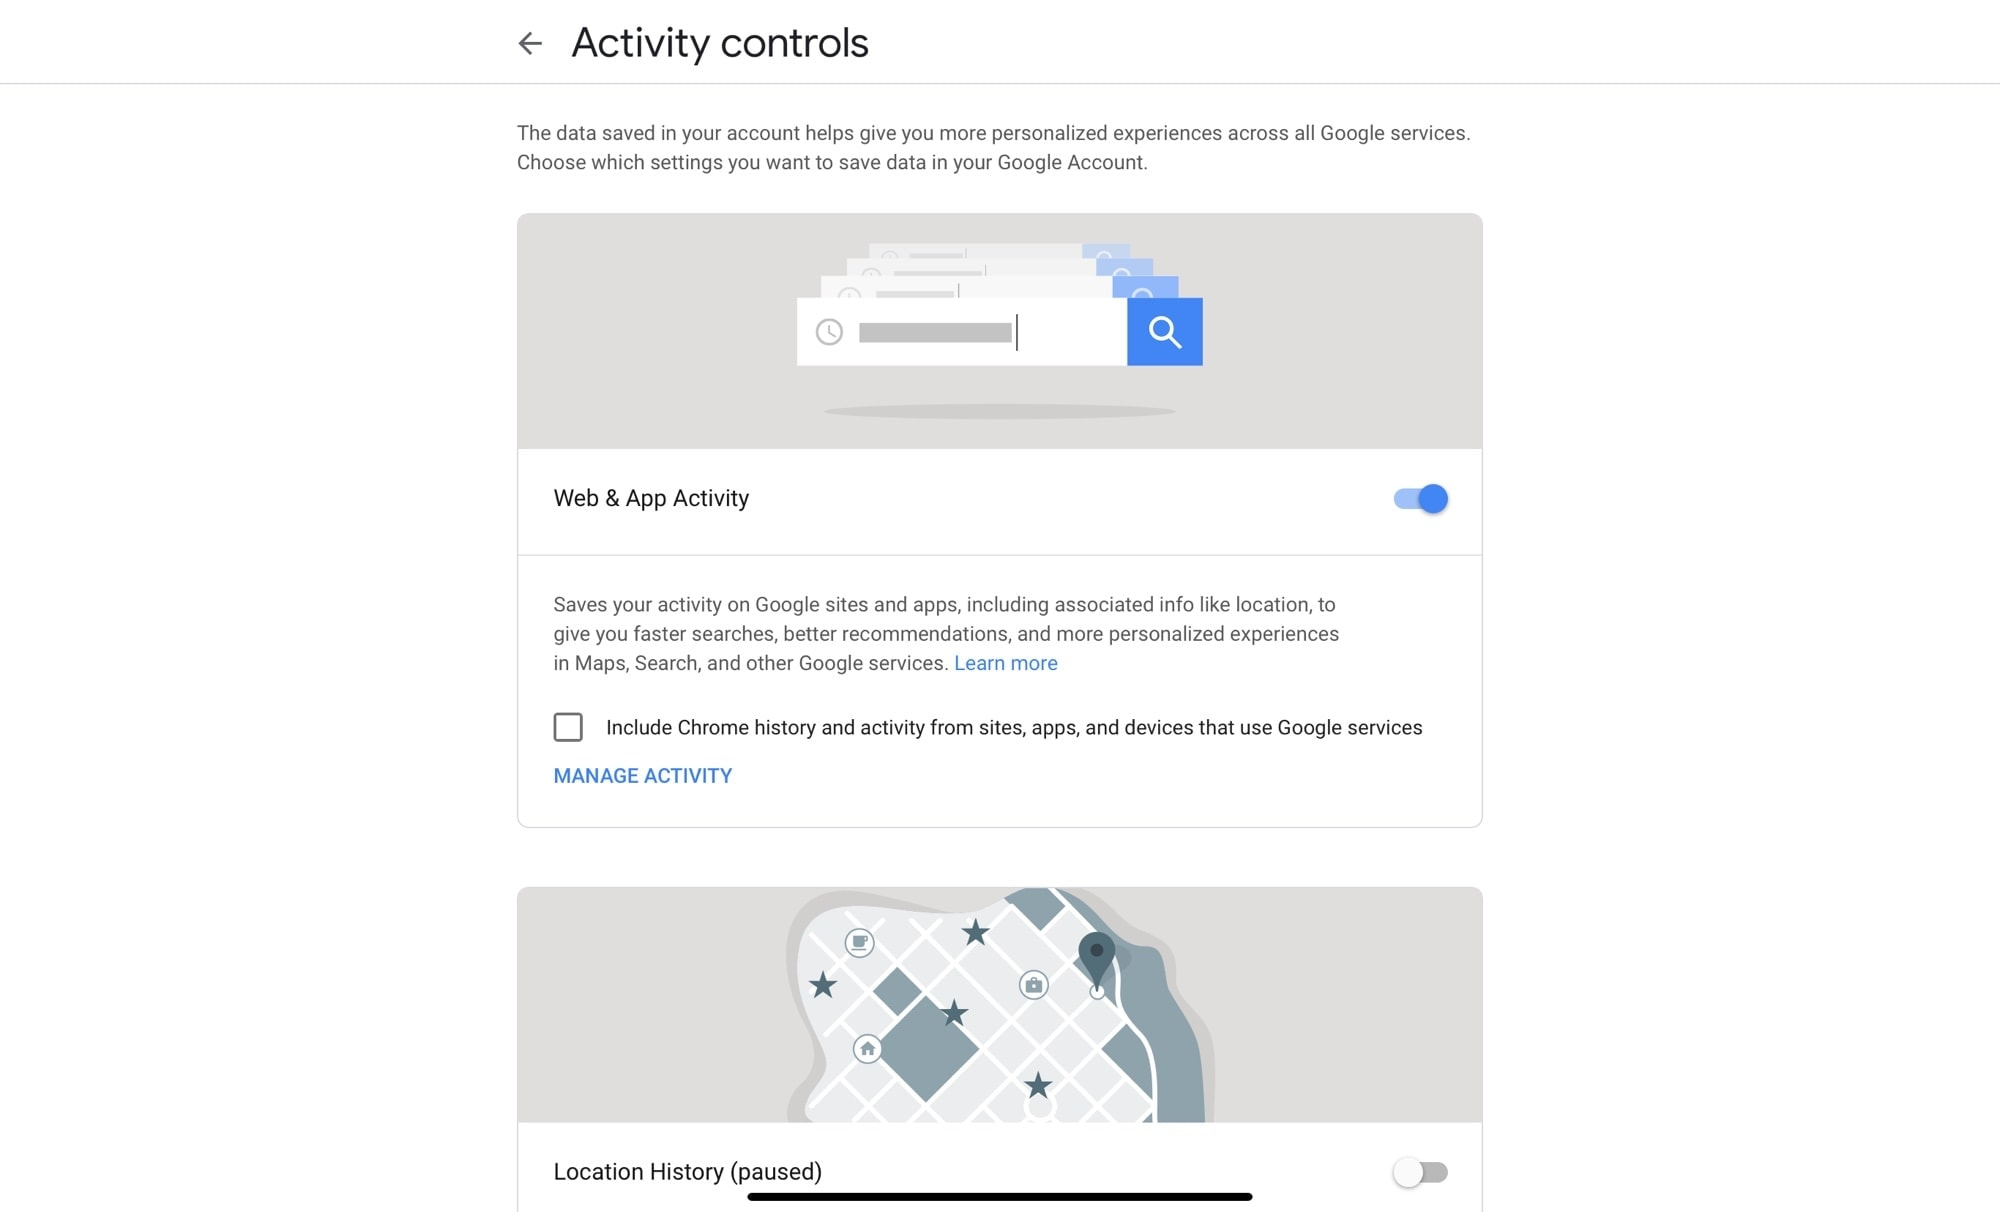 Switch everything off on the Google Activity Controls page.